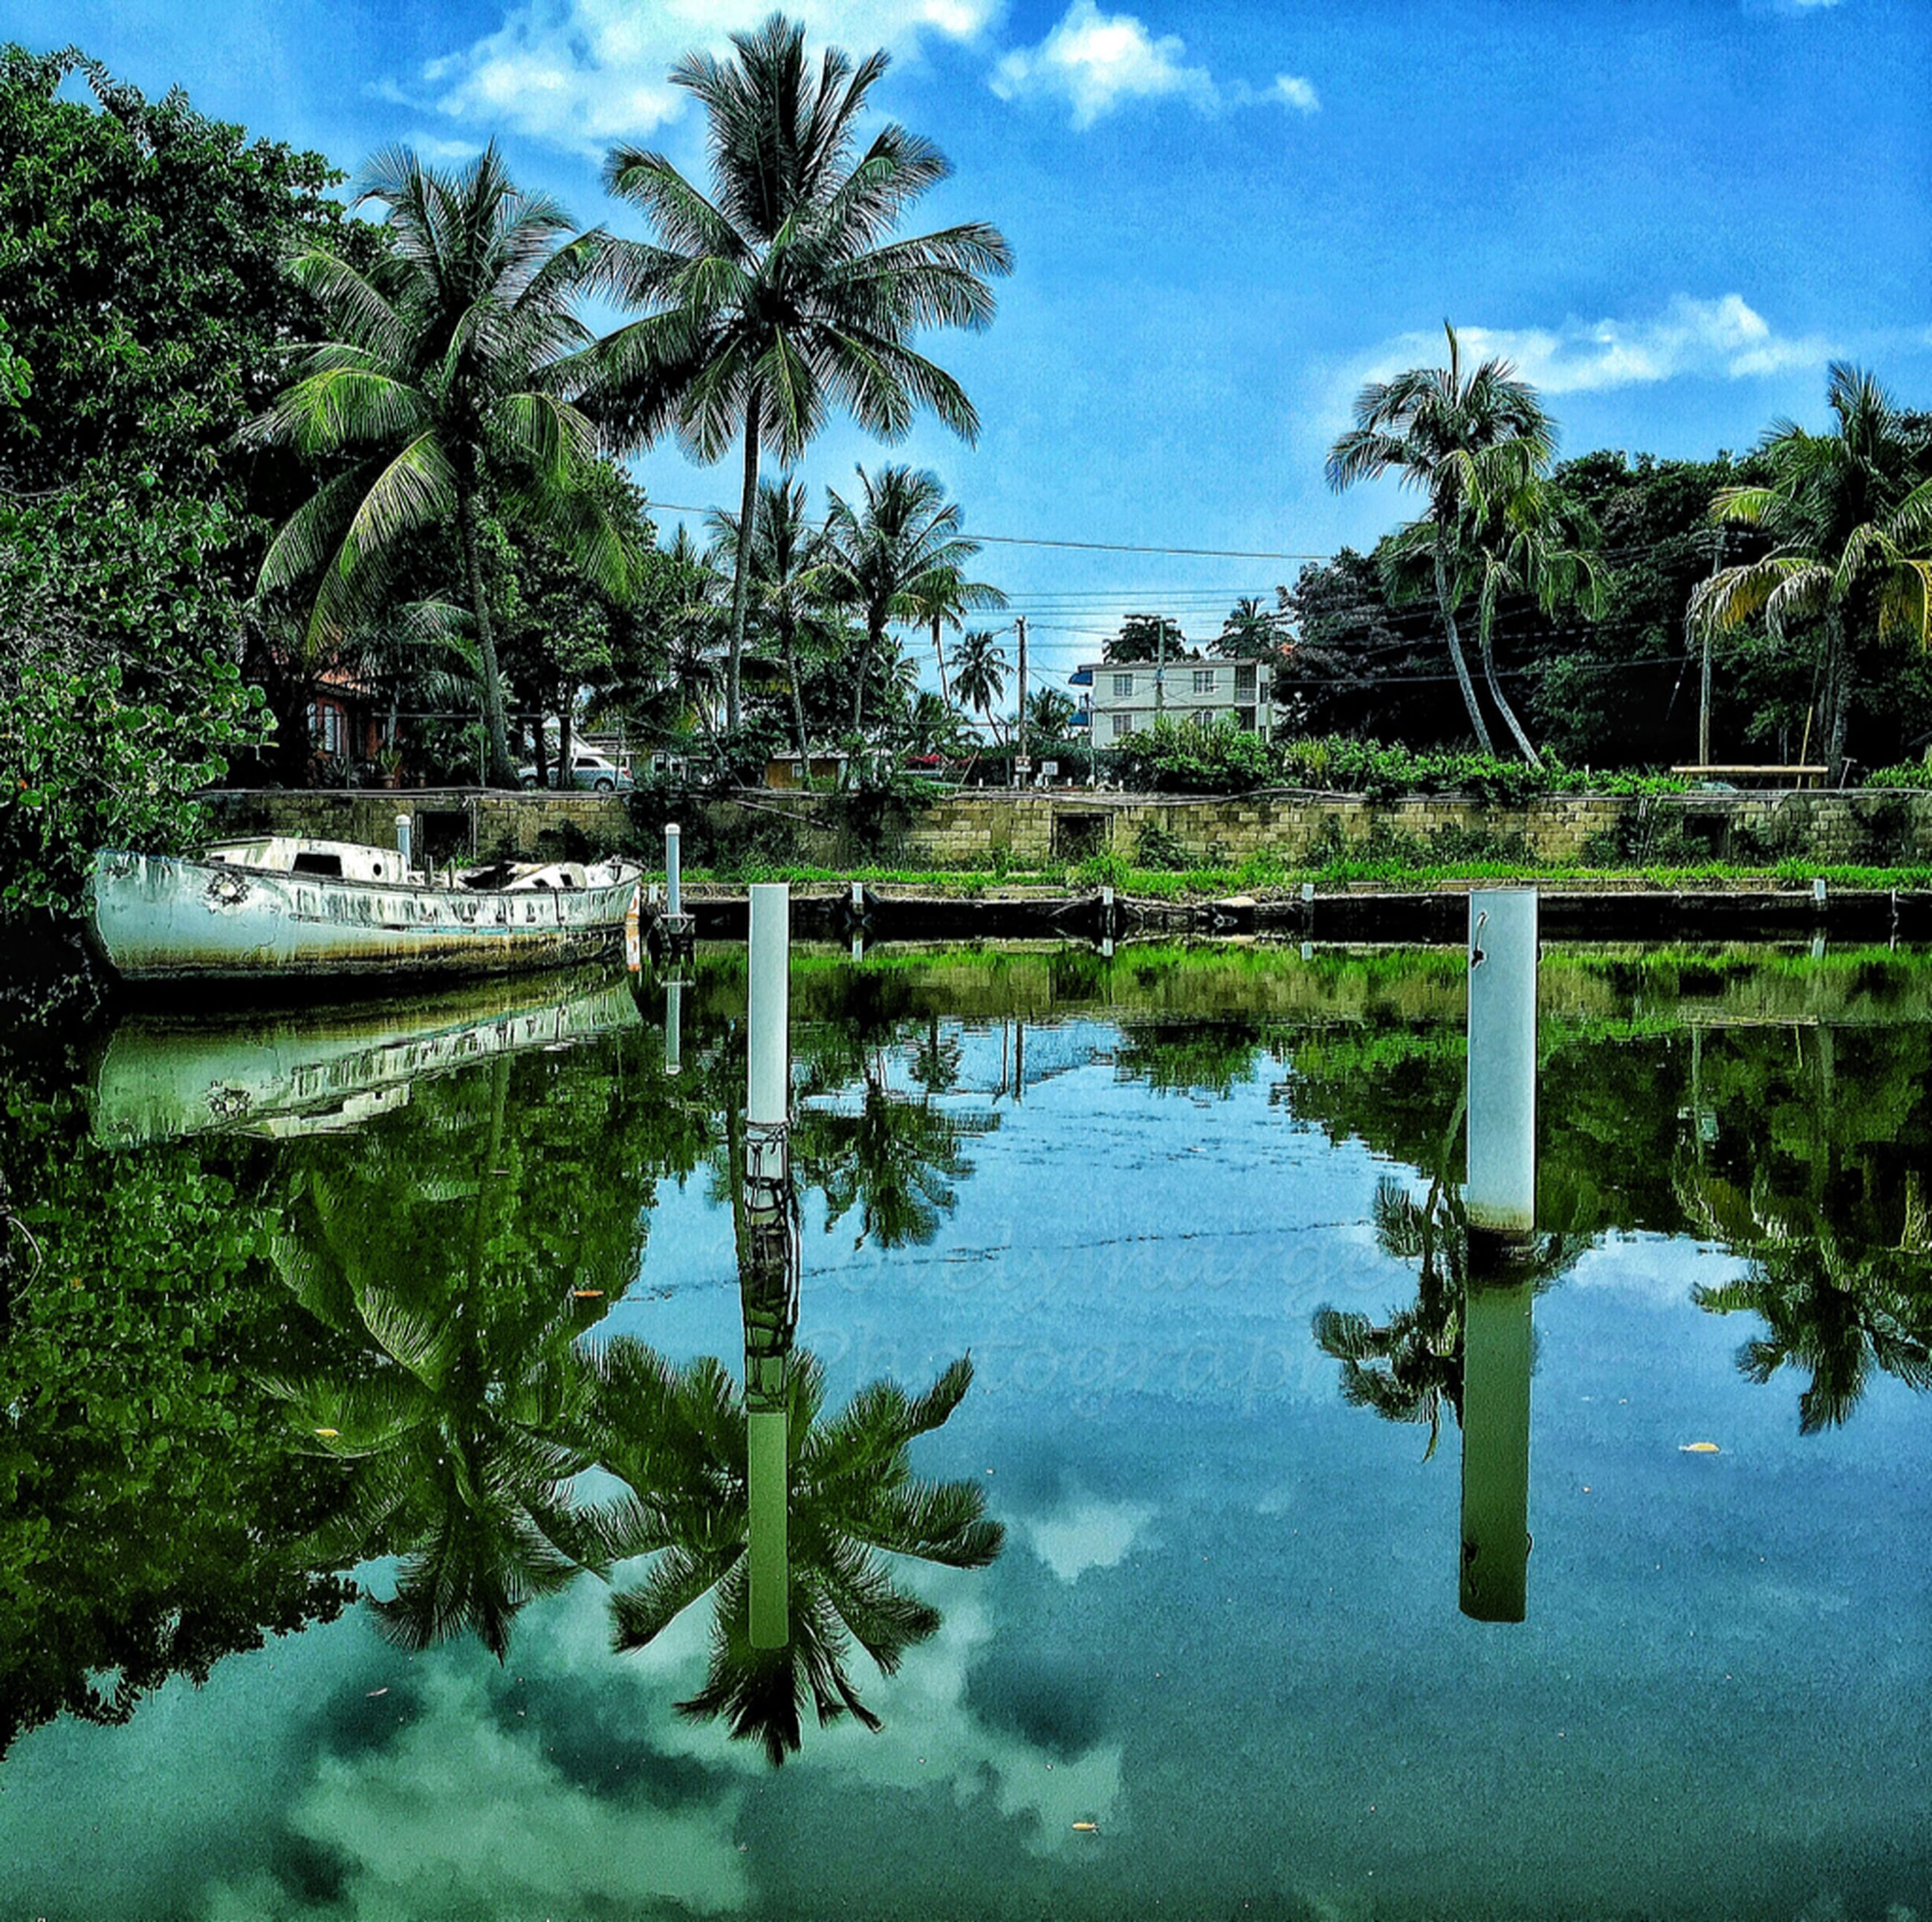 water, tree, palm tree, reflection, sky, tranquility, tranquil scene, lake, waterfront, nature, scenics, growth, beauty in nature, cloud, green color, cloud - sky, swimming pool, standing water, pond, blue